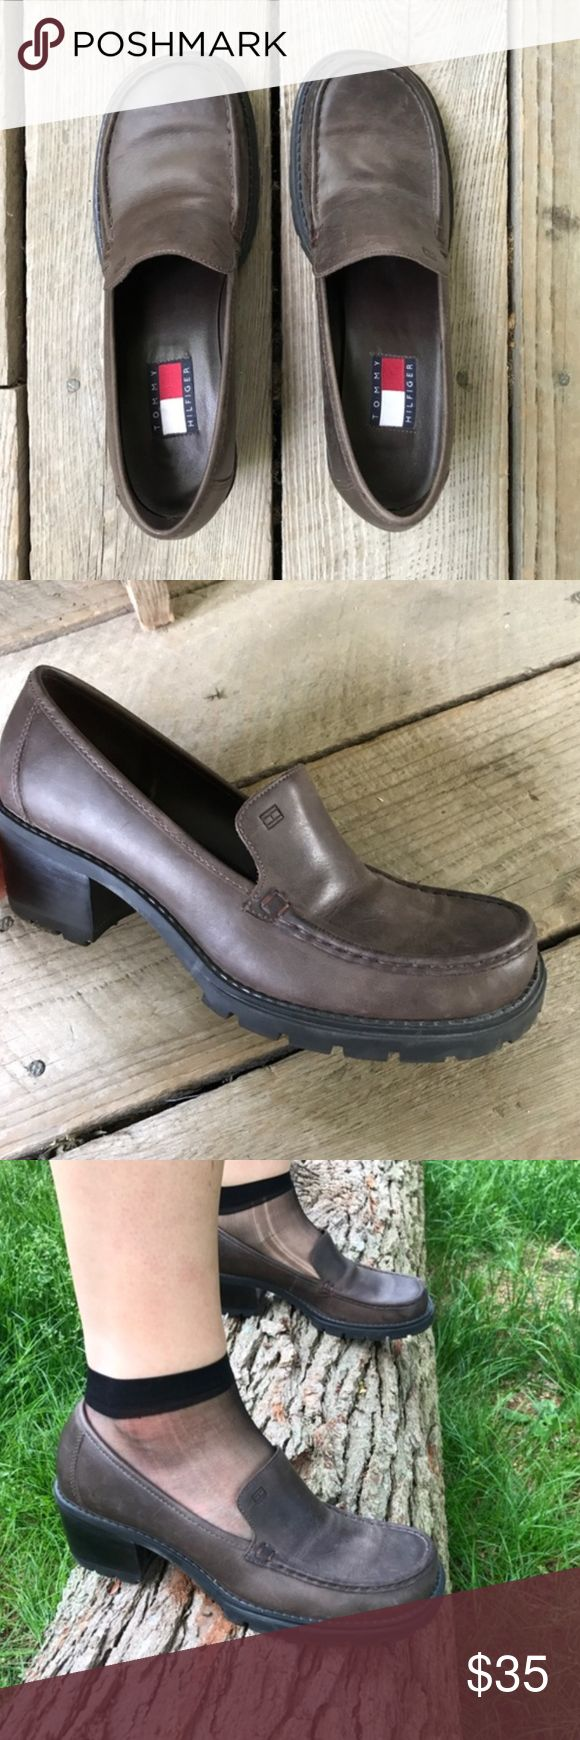 tommy hilfiger dark brown chunky heels Tommy Hilfiger dark brown chunky platform heels very 90s preppy looking! Would look great with a mini skirt or just jeans size 8  Genuine leather upper  let me know if you have any questions i'd love to help! Tommy Hilfiger Shoes Heels